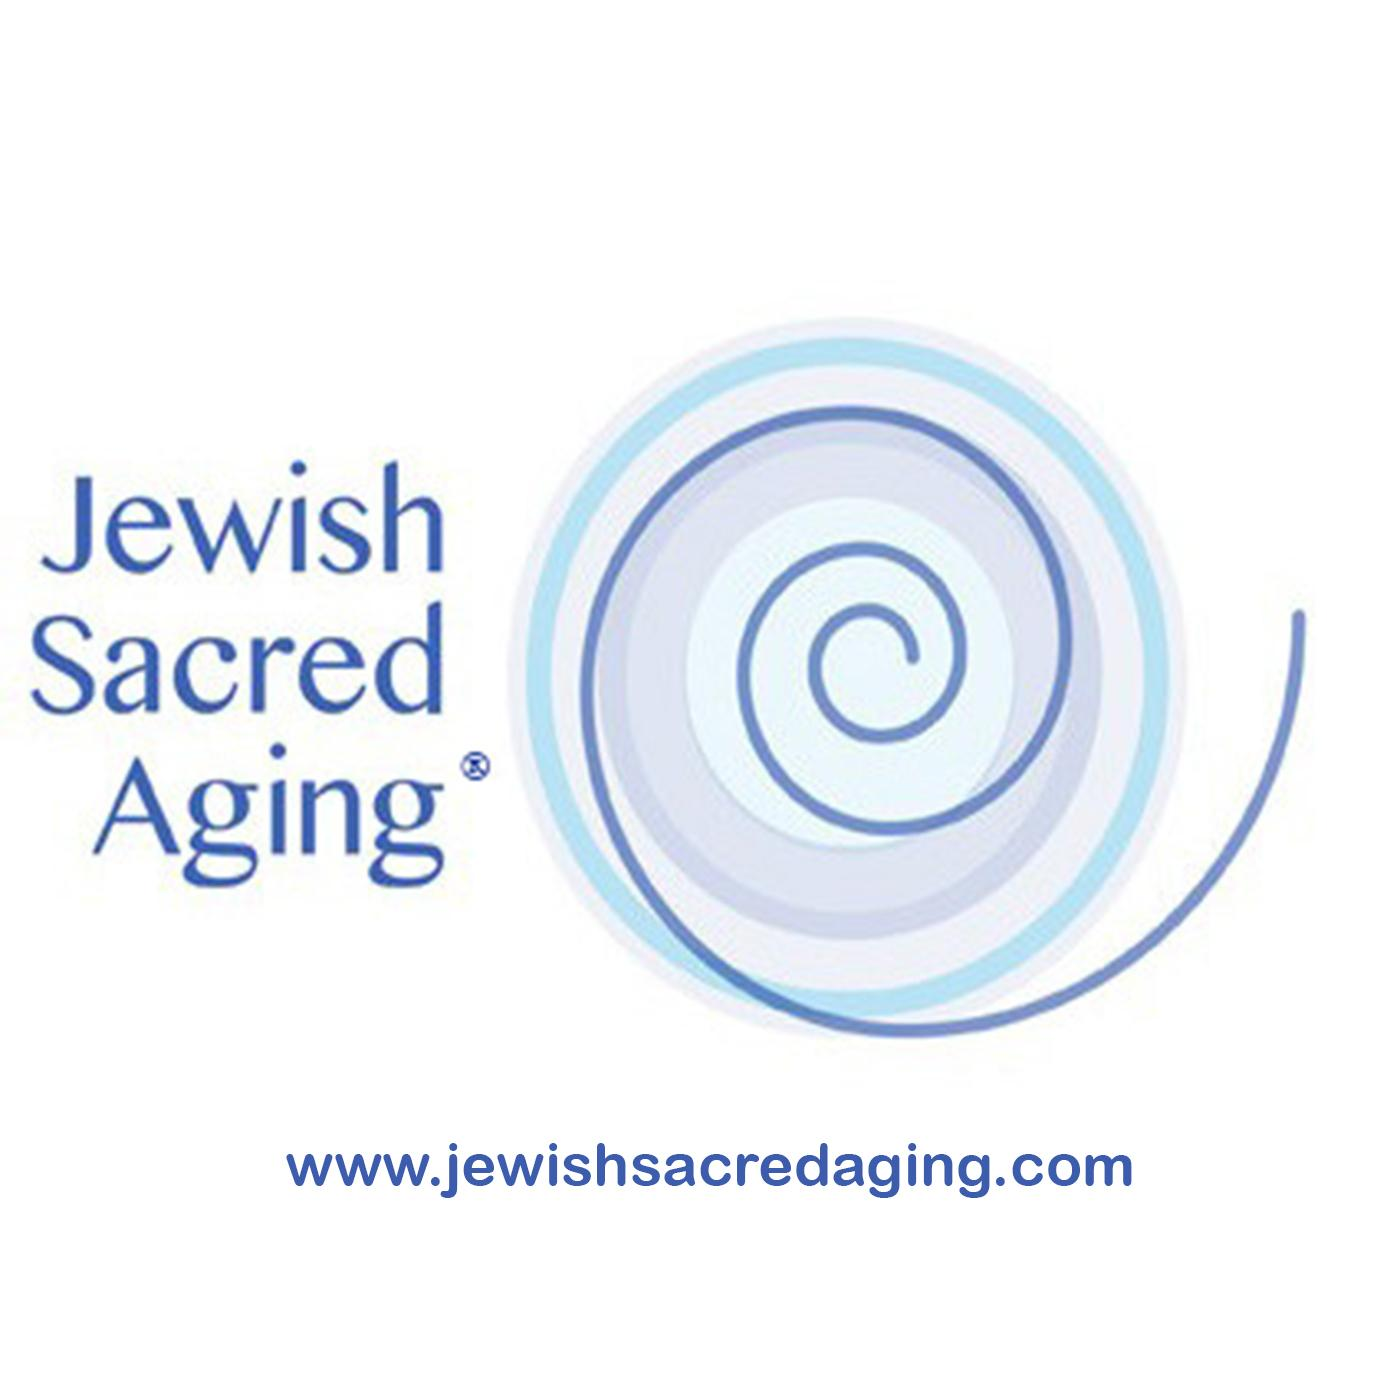 Jewish Sacred Aging Podcast 2016-15: Rabbi Simcha Raphael (Part 1) - Jewish views on death, dying, and bereavement